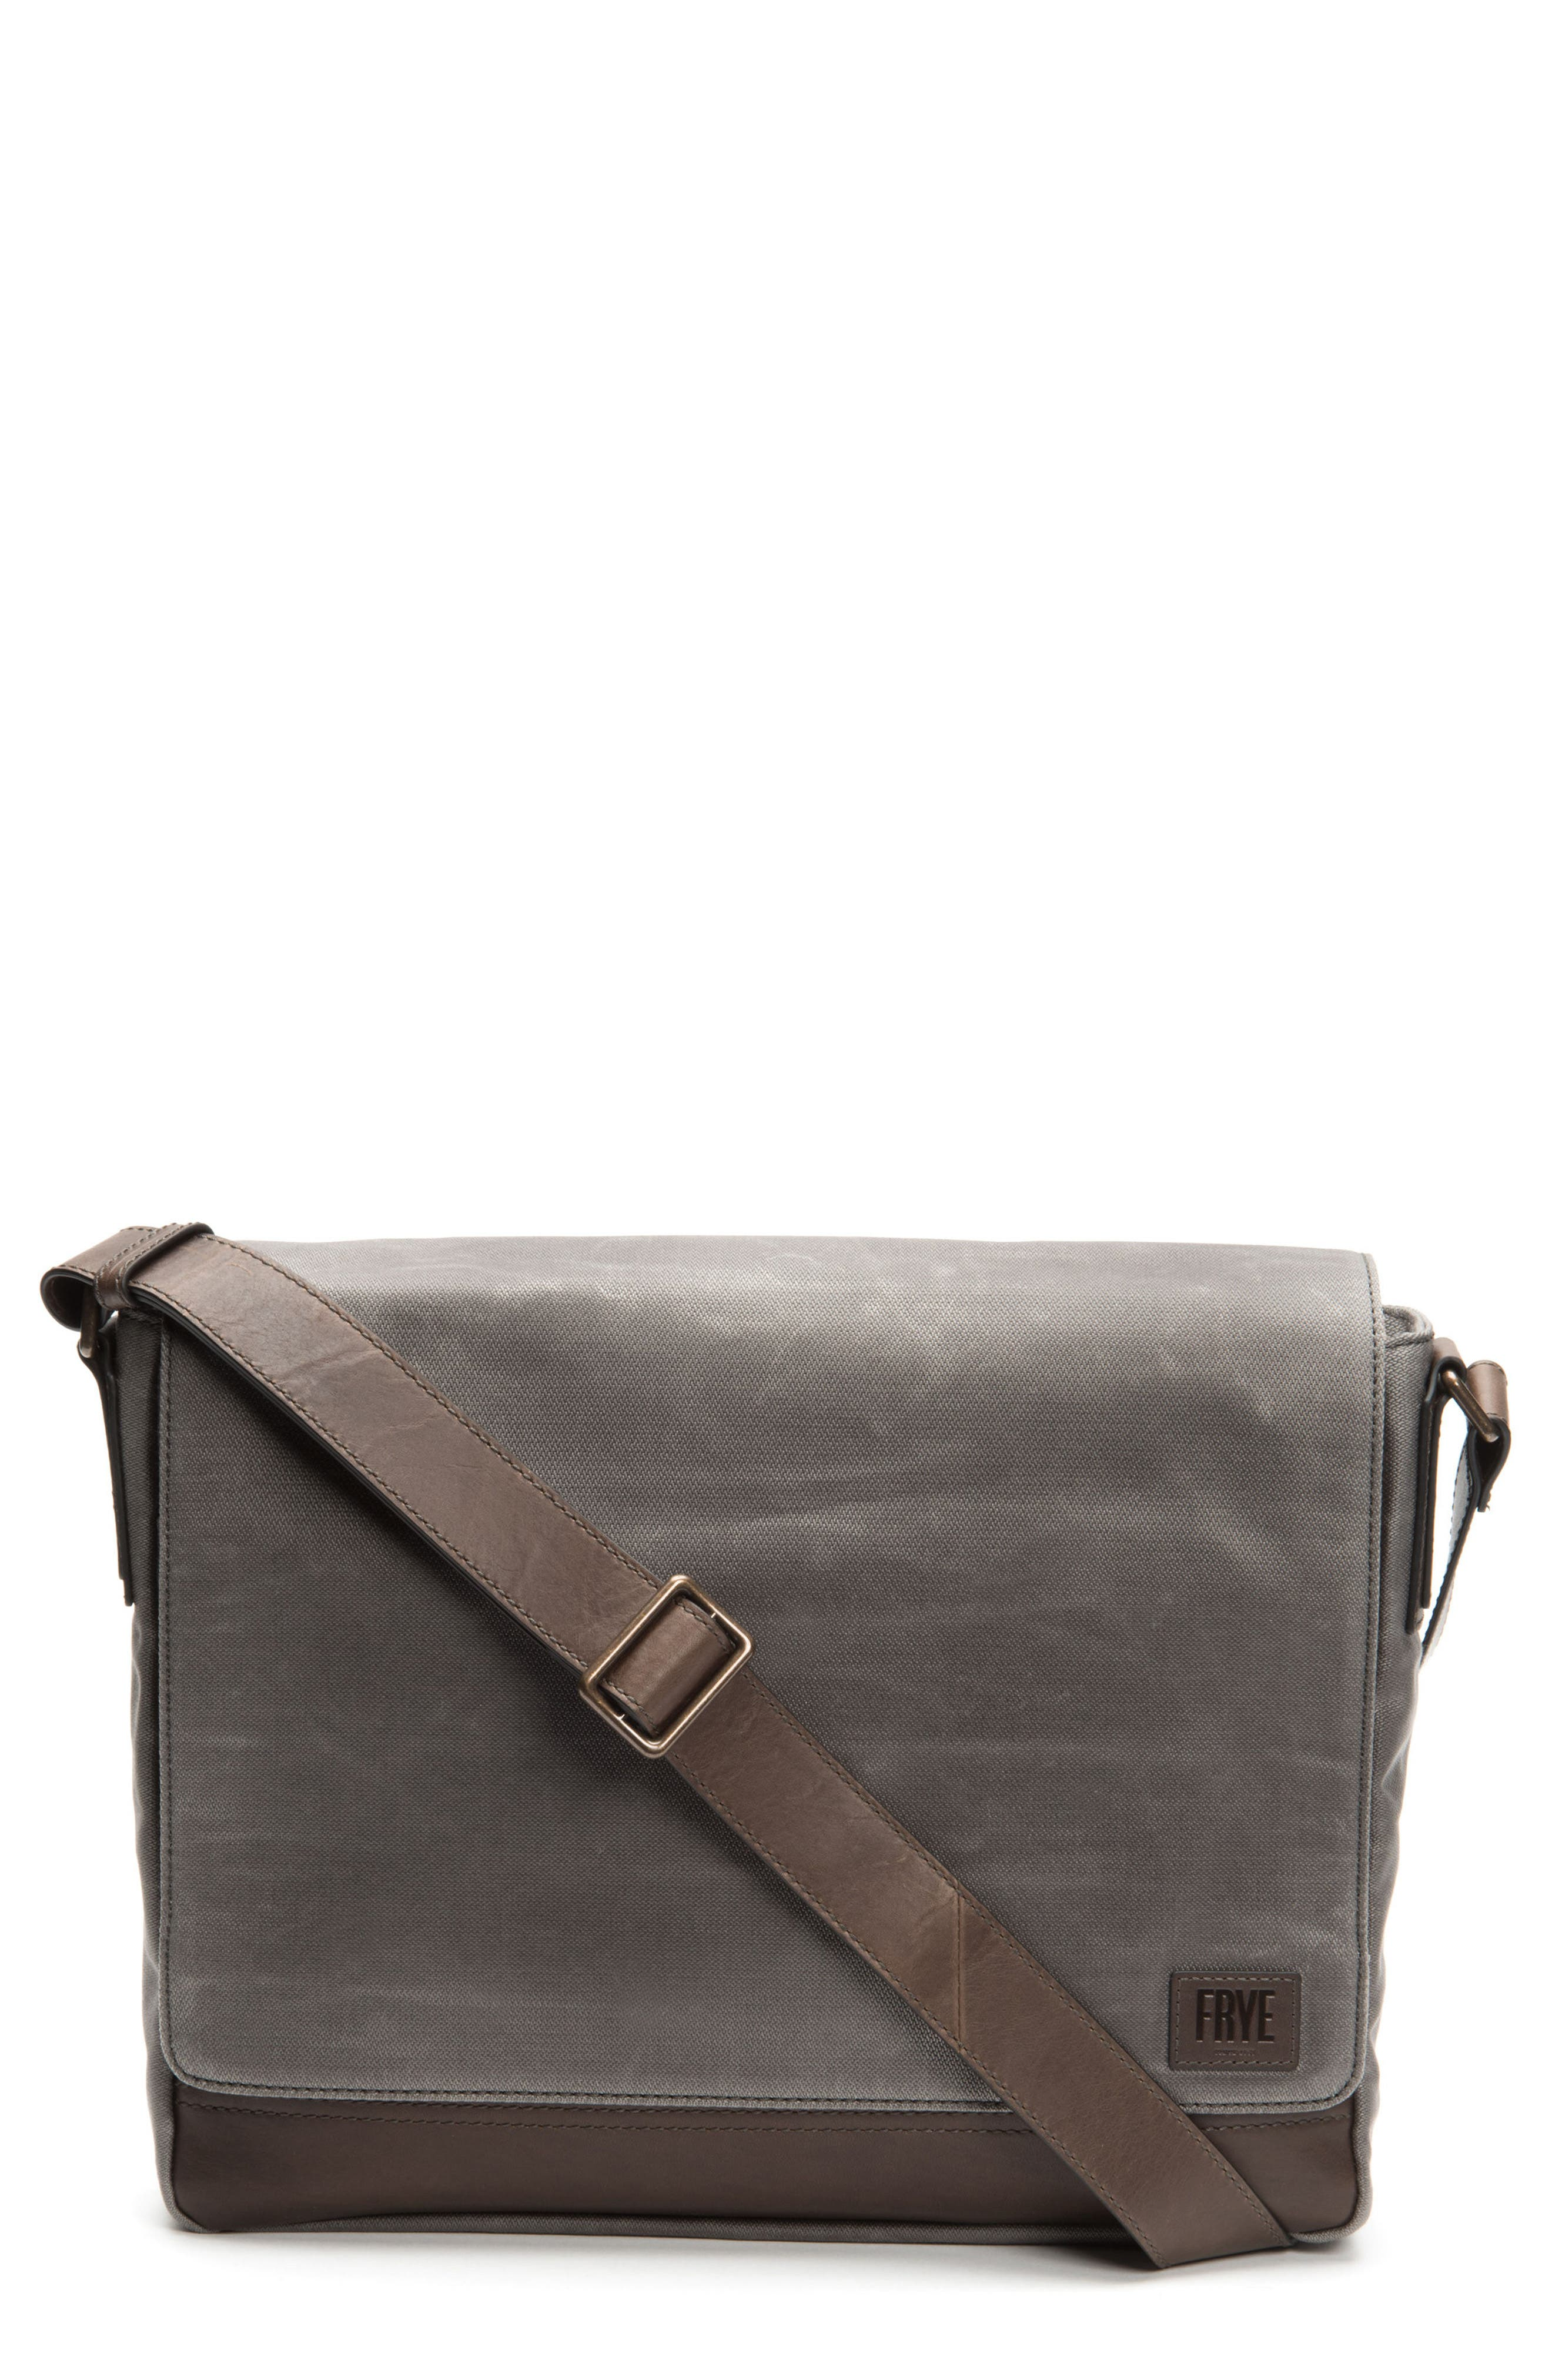 Frey Carter Messenger Bag,                         Main,                         color,